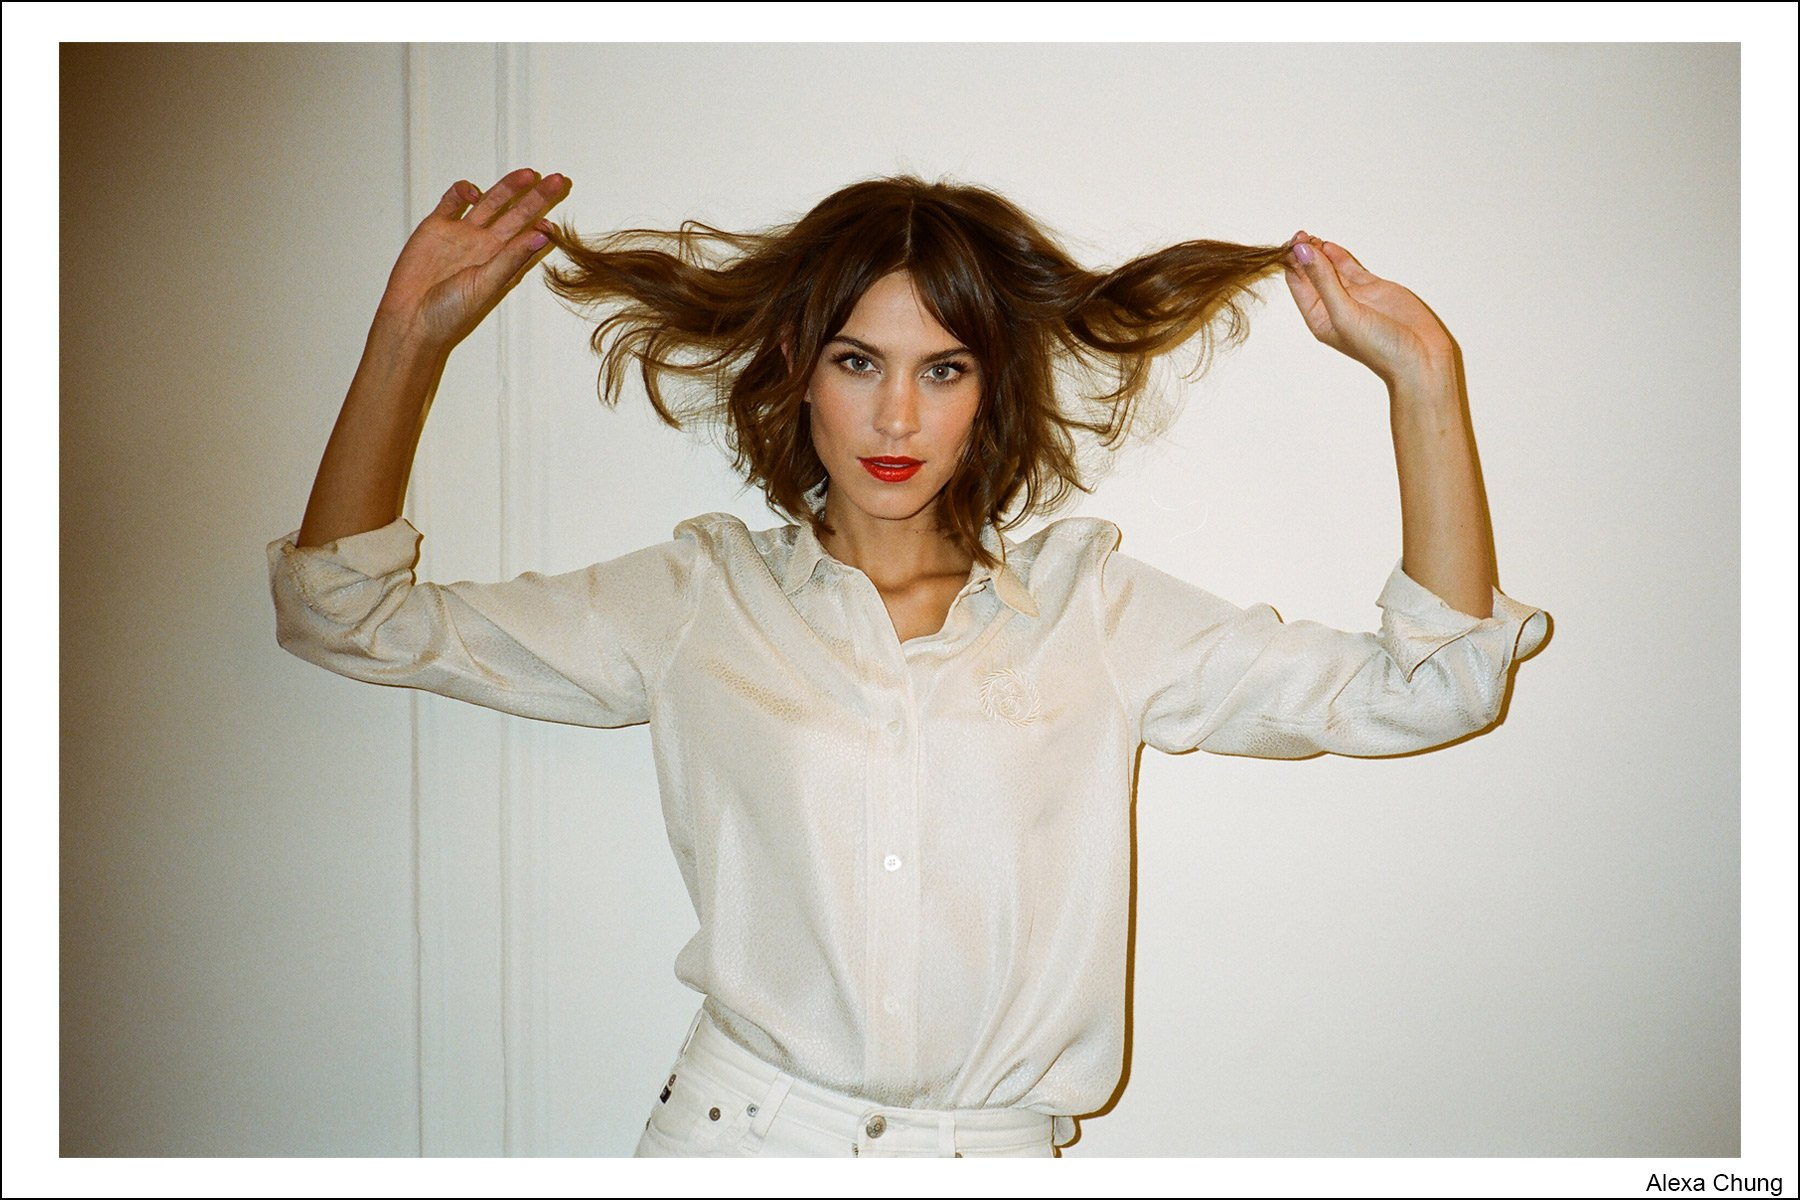 Model Alexa Chung, photographed by Kristin Gallegos. Ponyboy magazine NY.